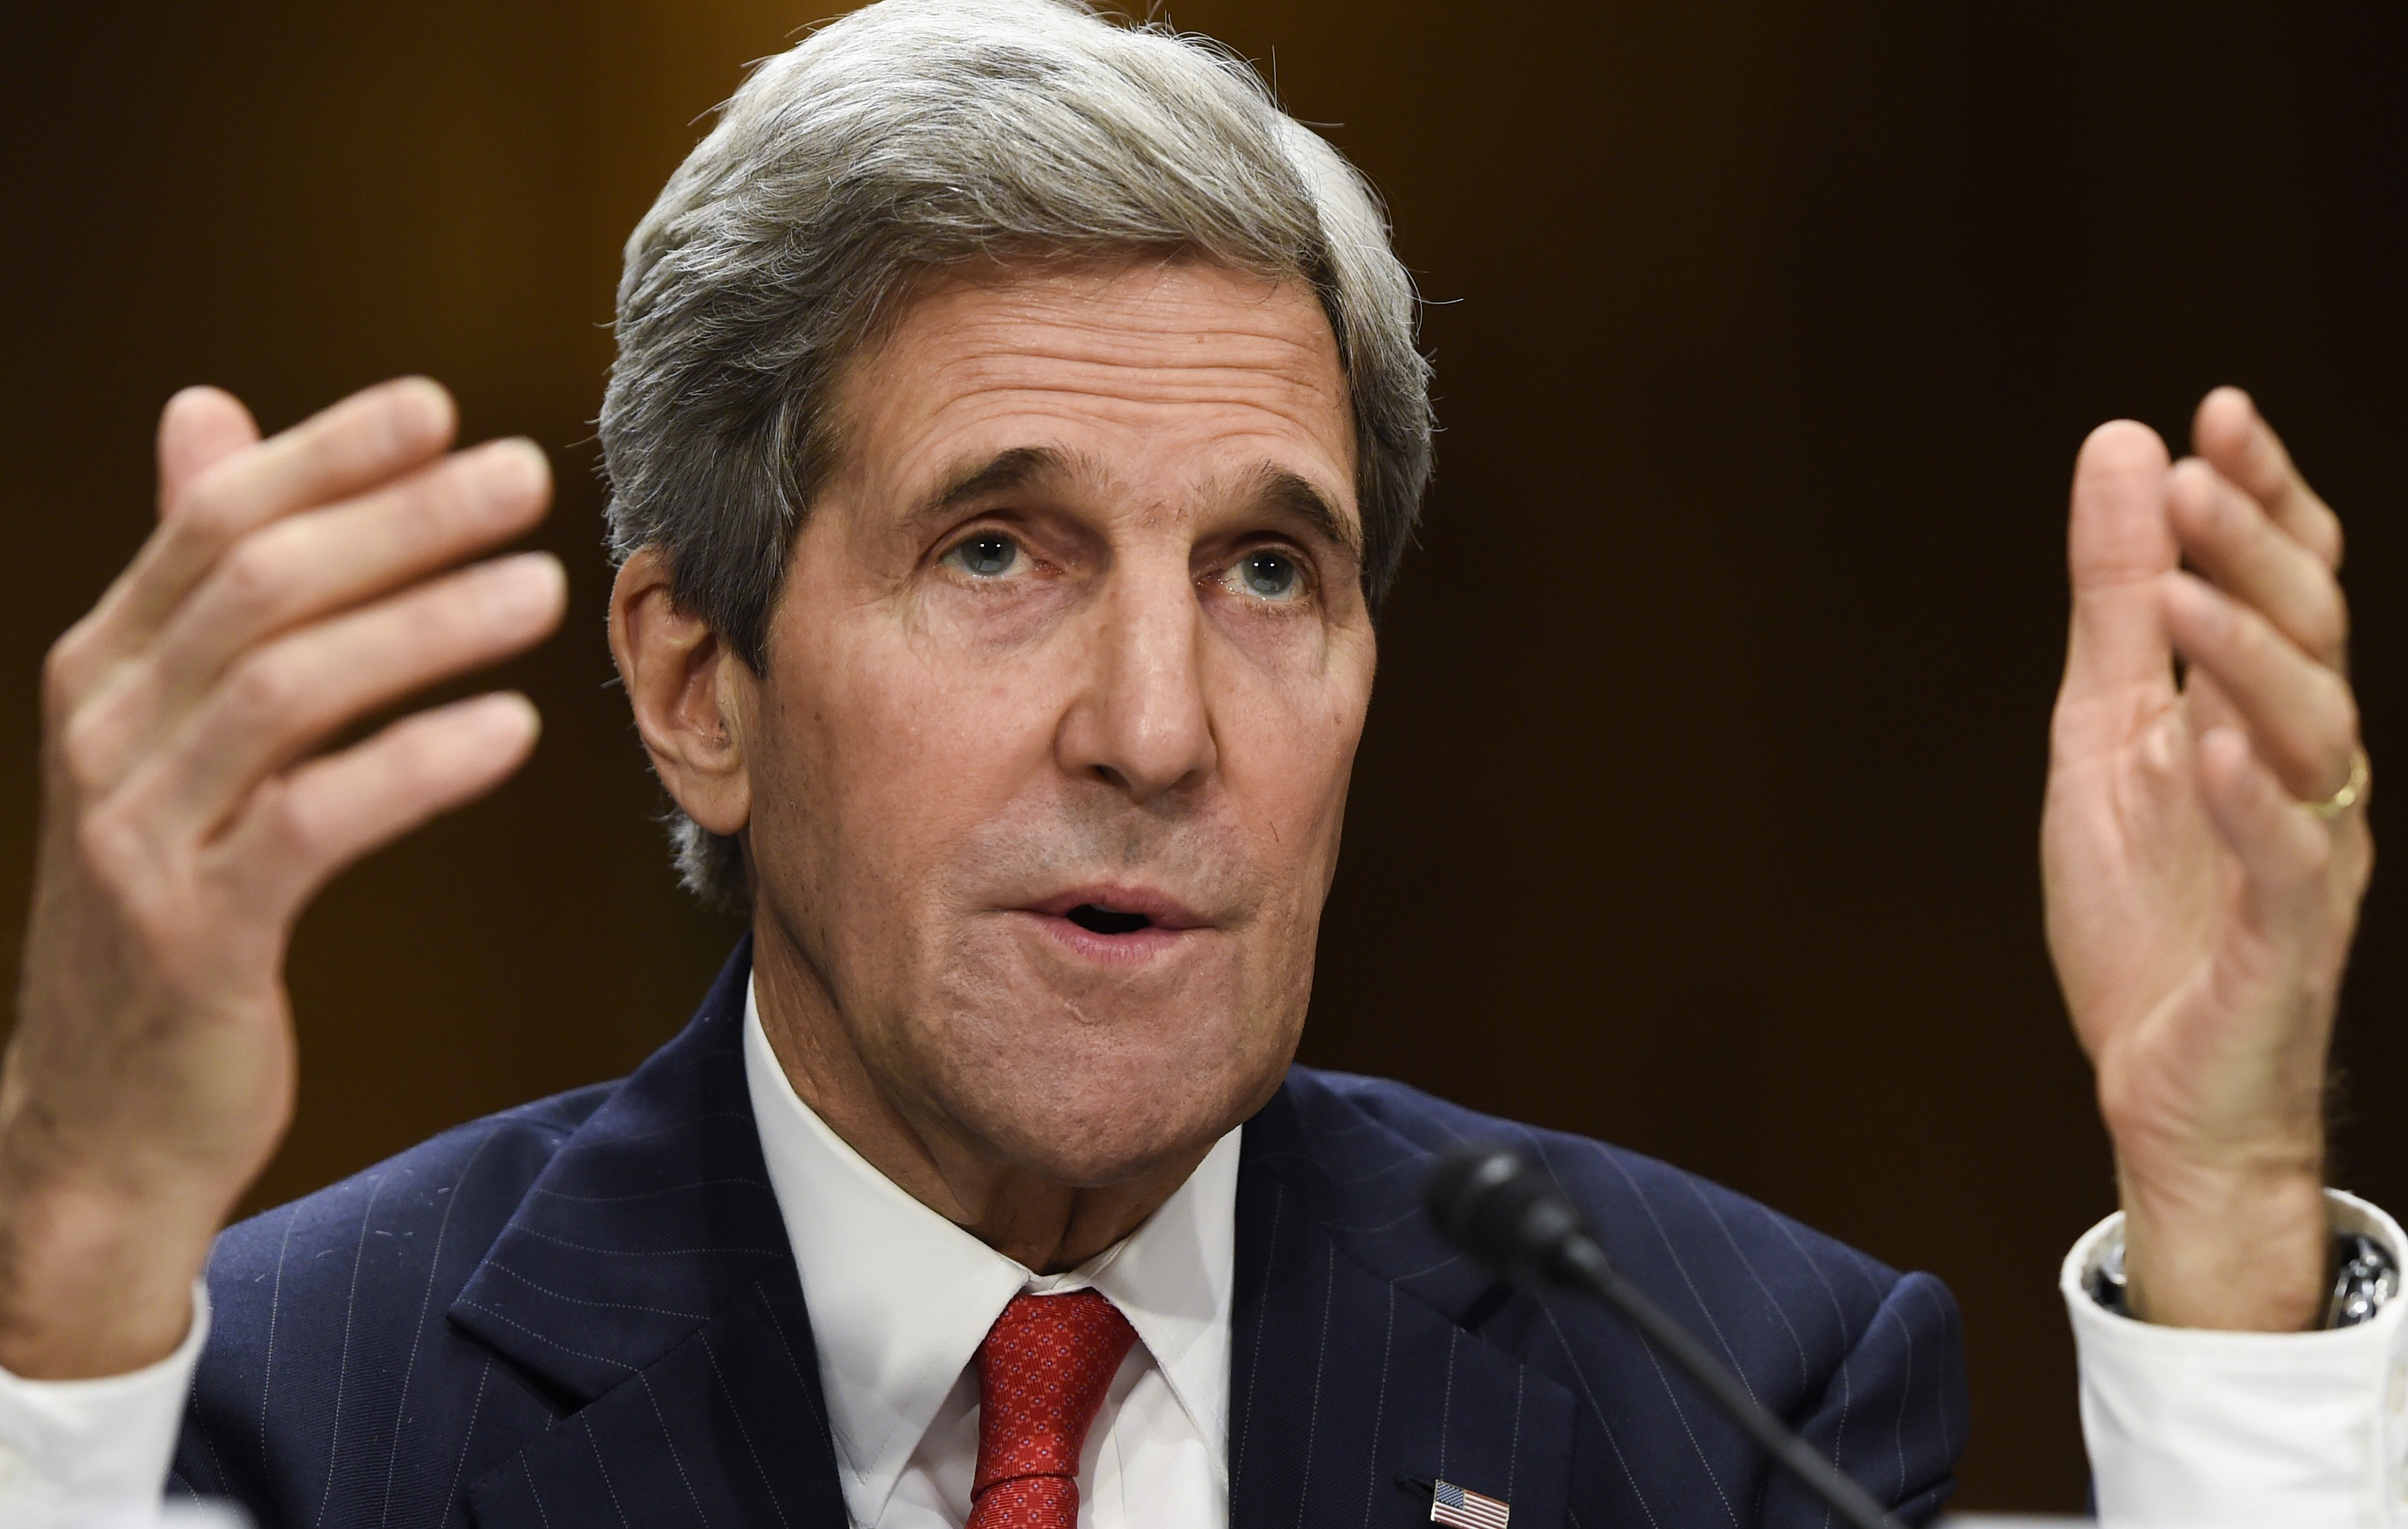 US Secretary of State John Kerry testifies before the Senate Foreign Relations Committee on Capitol Hill in Washington, DC, April 8, 2014.